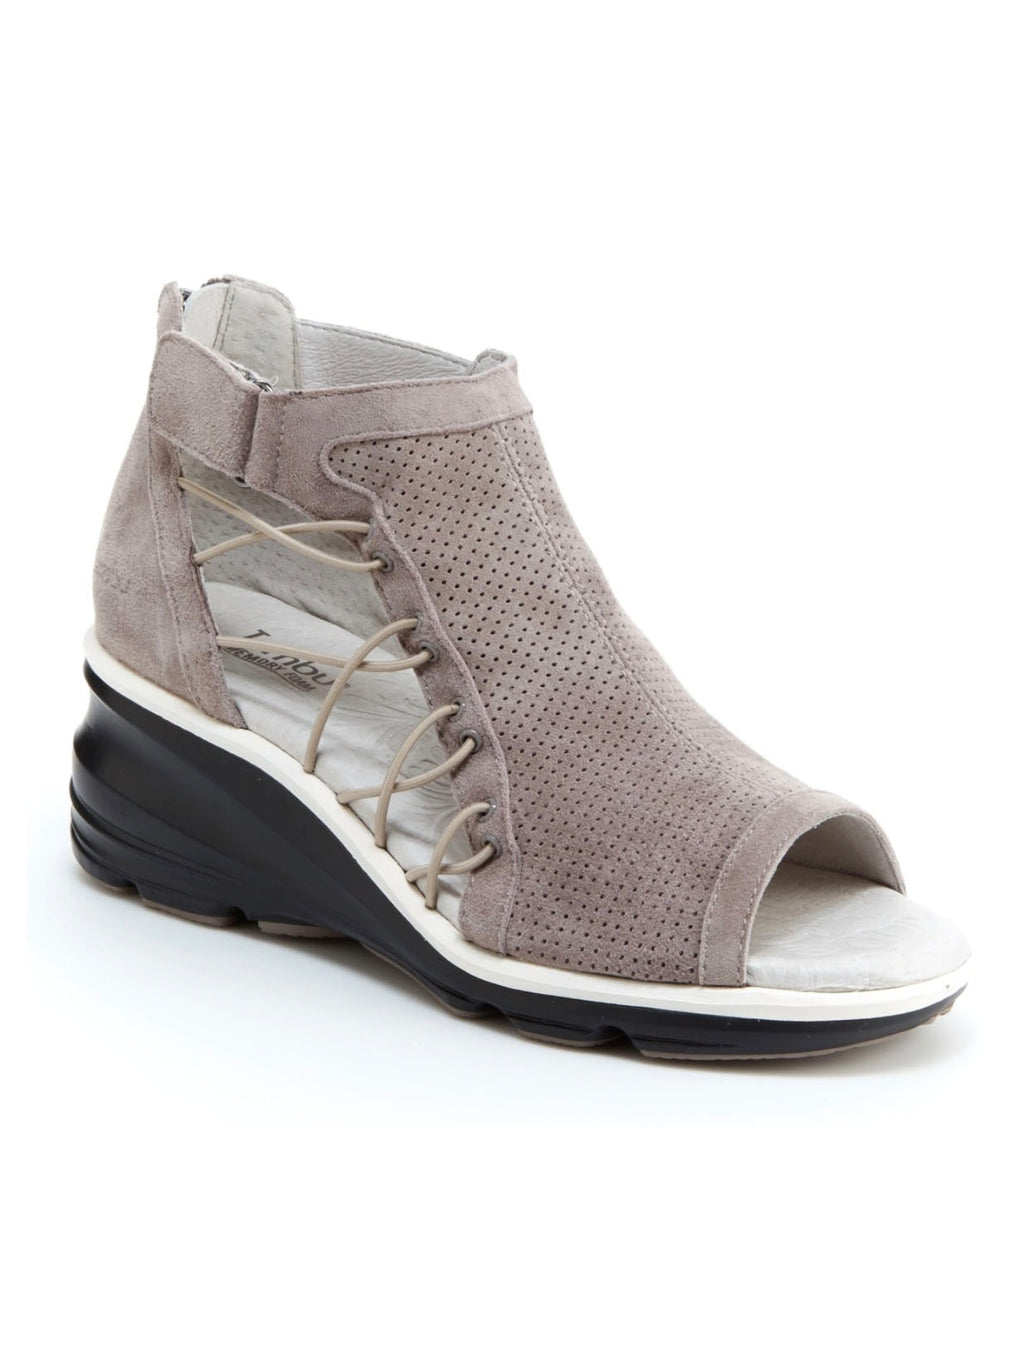 Jambu Naomi Sport Wedge in Light Taupe